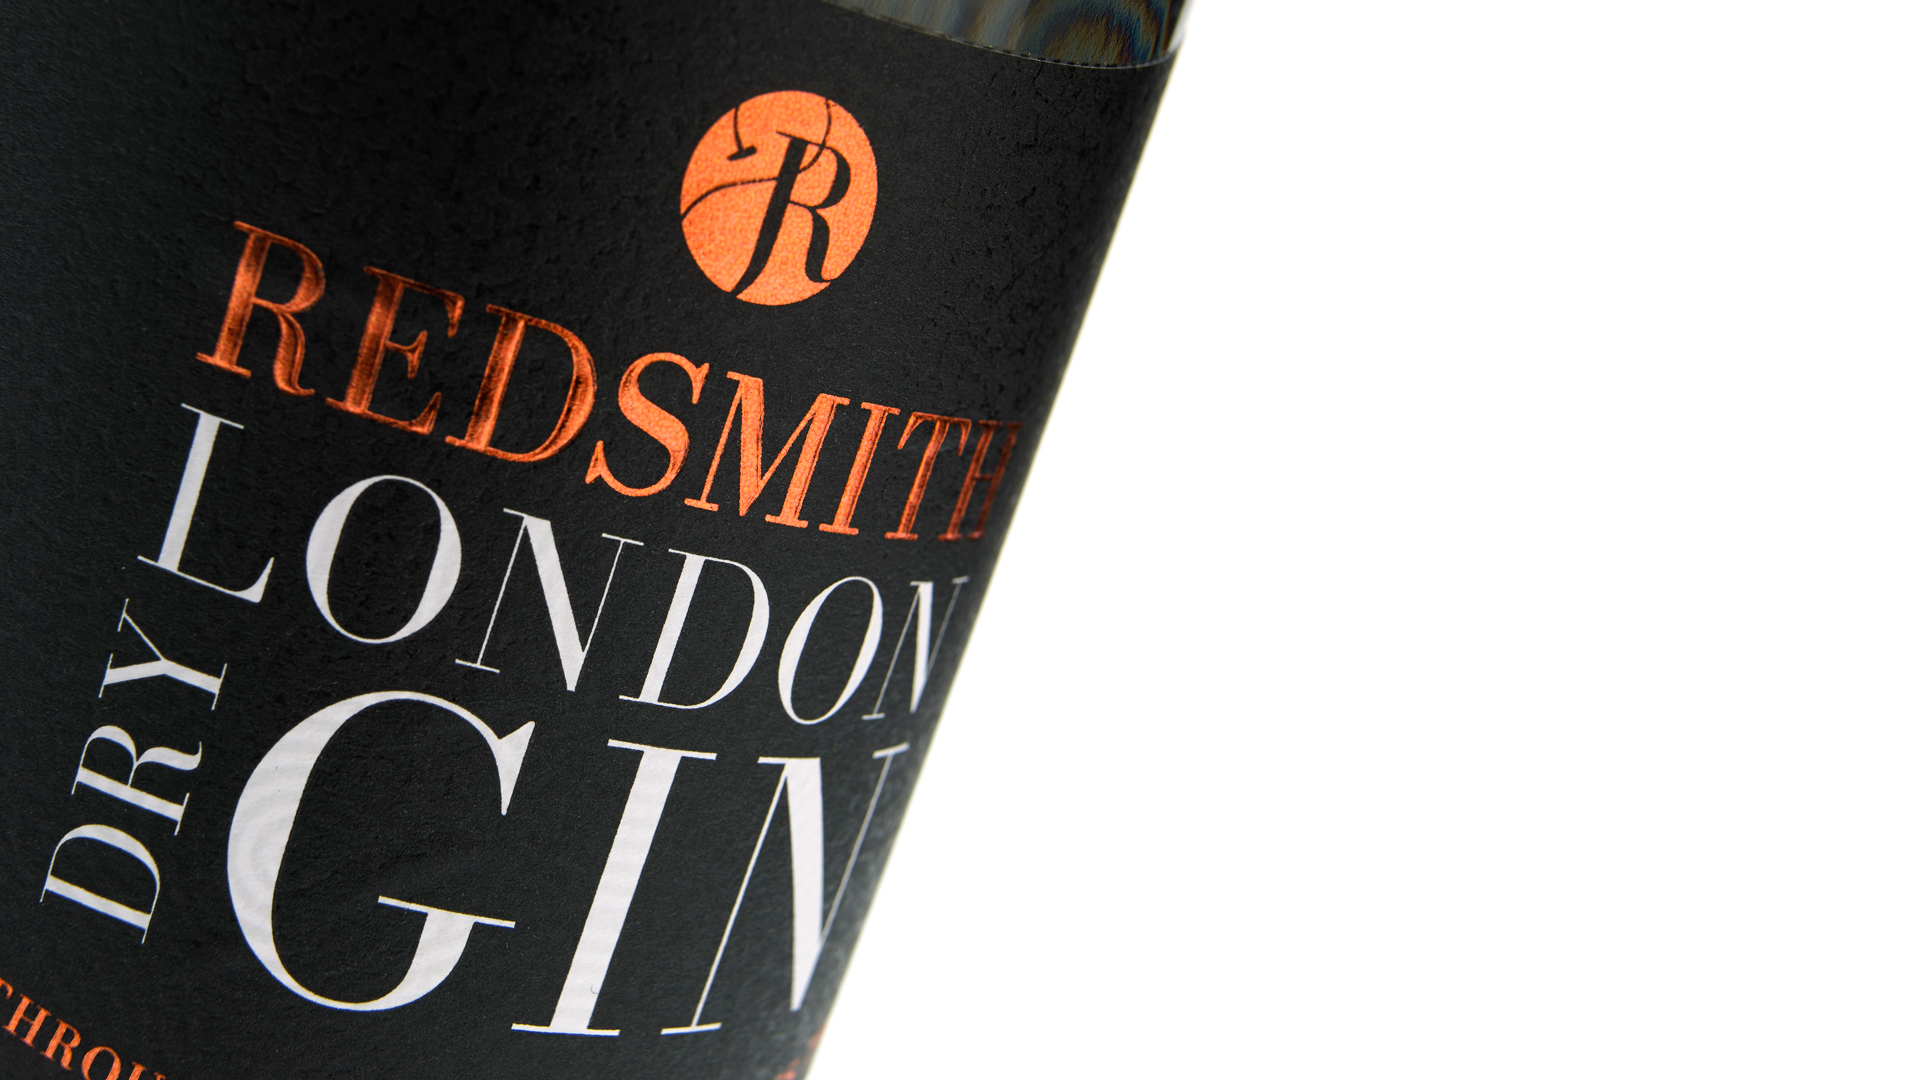 Redsmith London Dry Gin Label - PaperSpecs